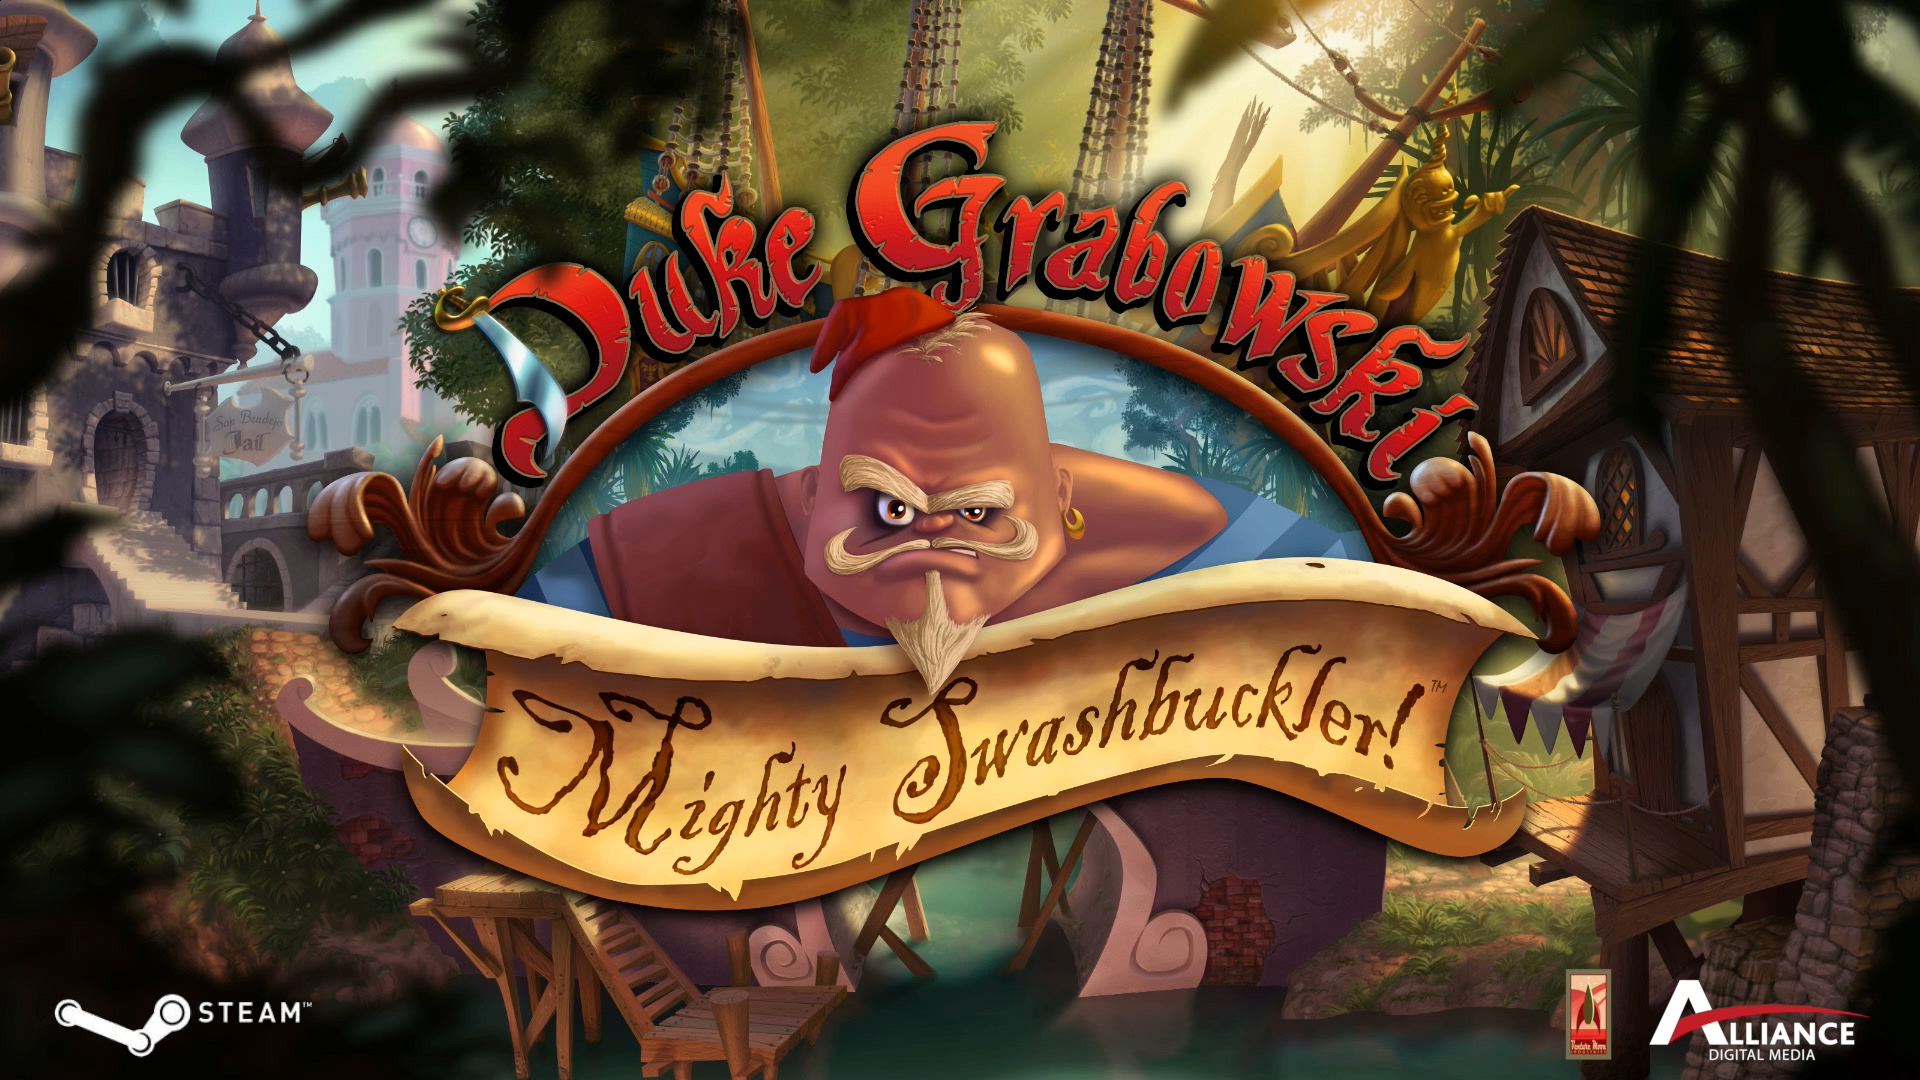 Duke Grabowski, Mighty Swashbuckler